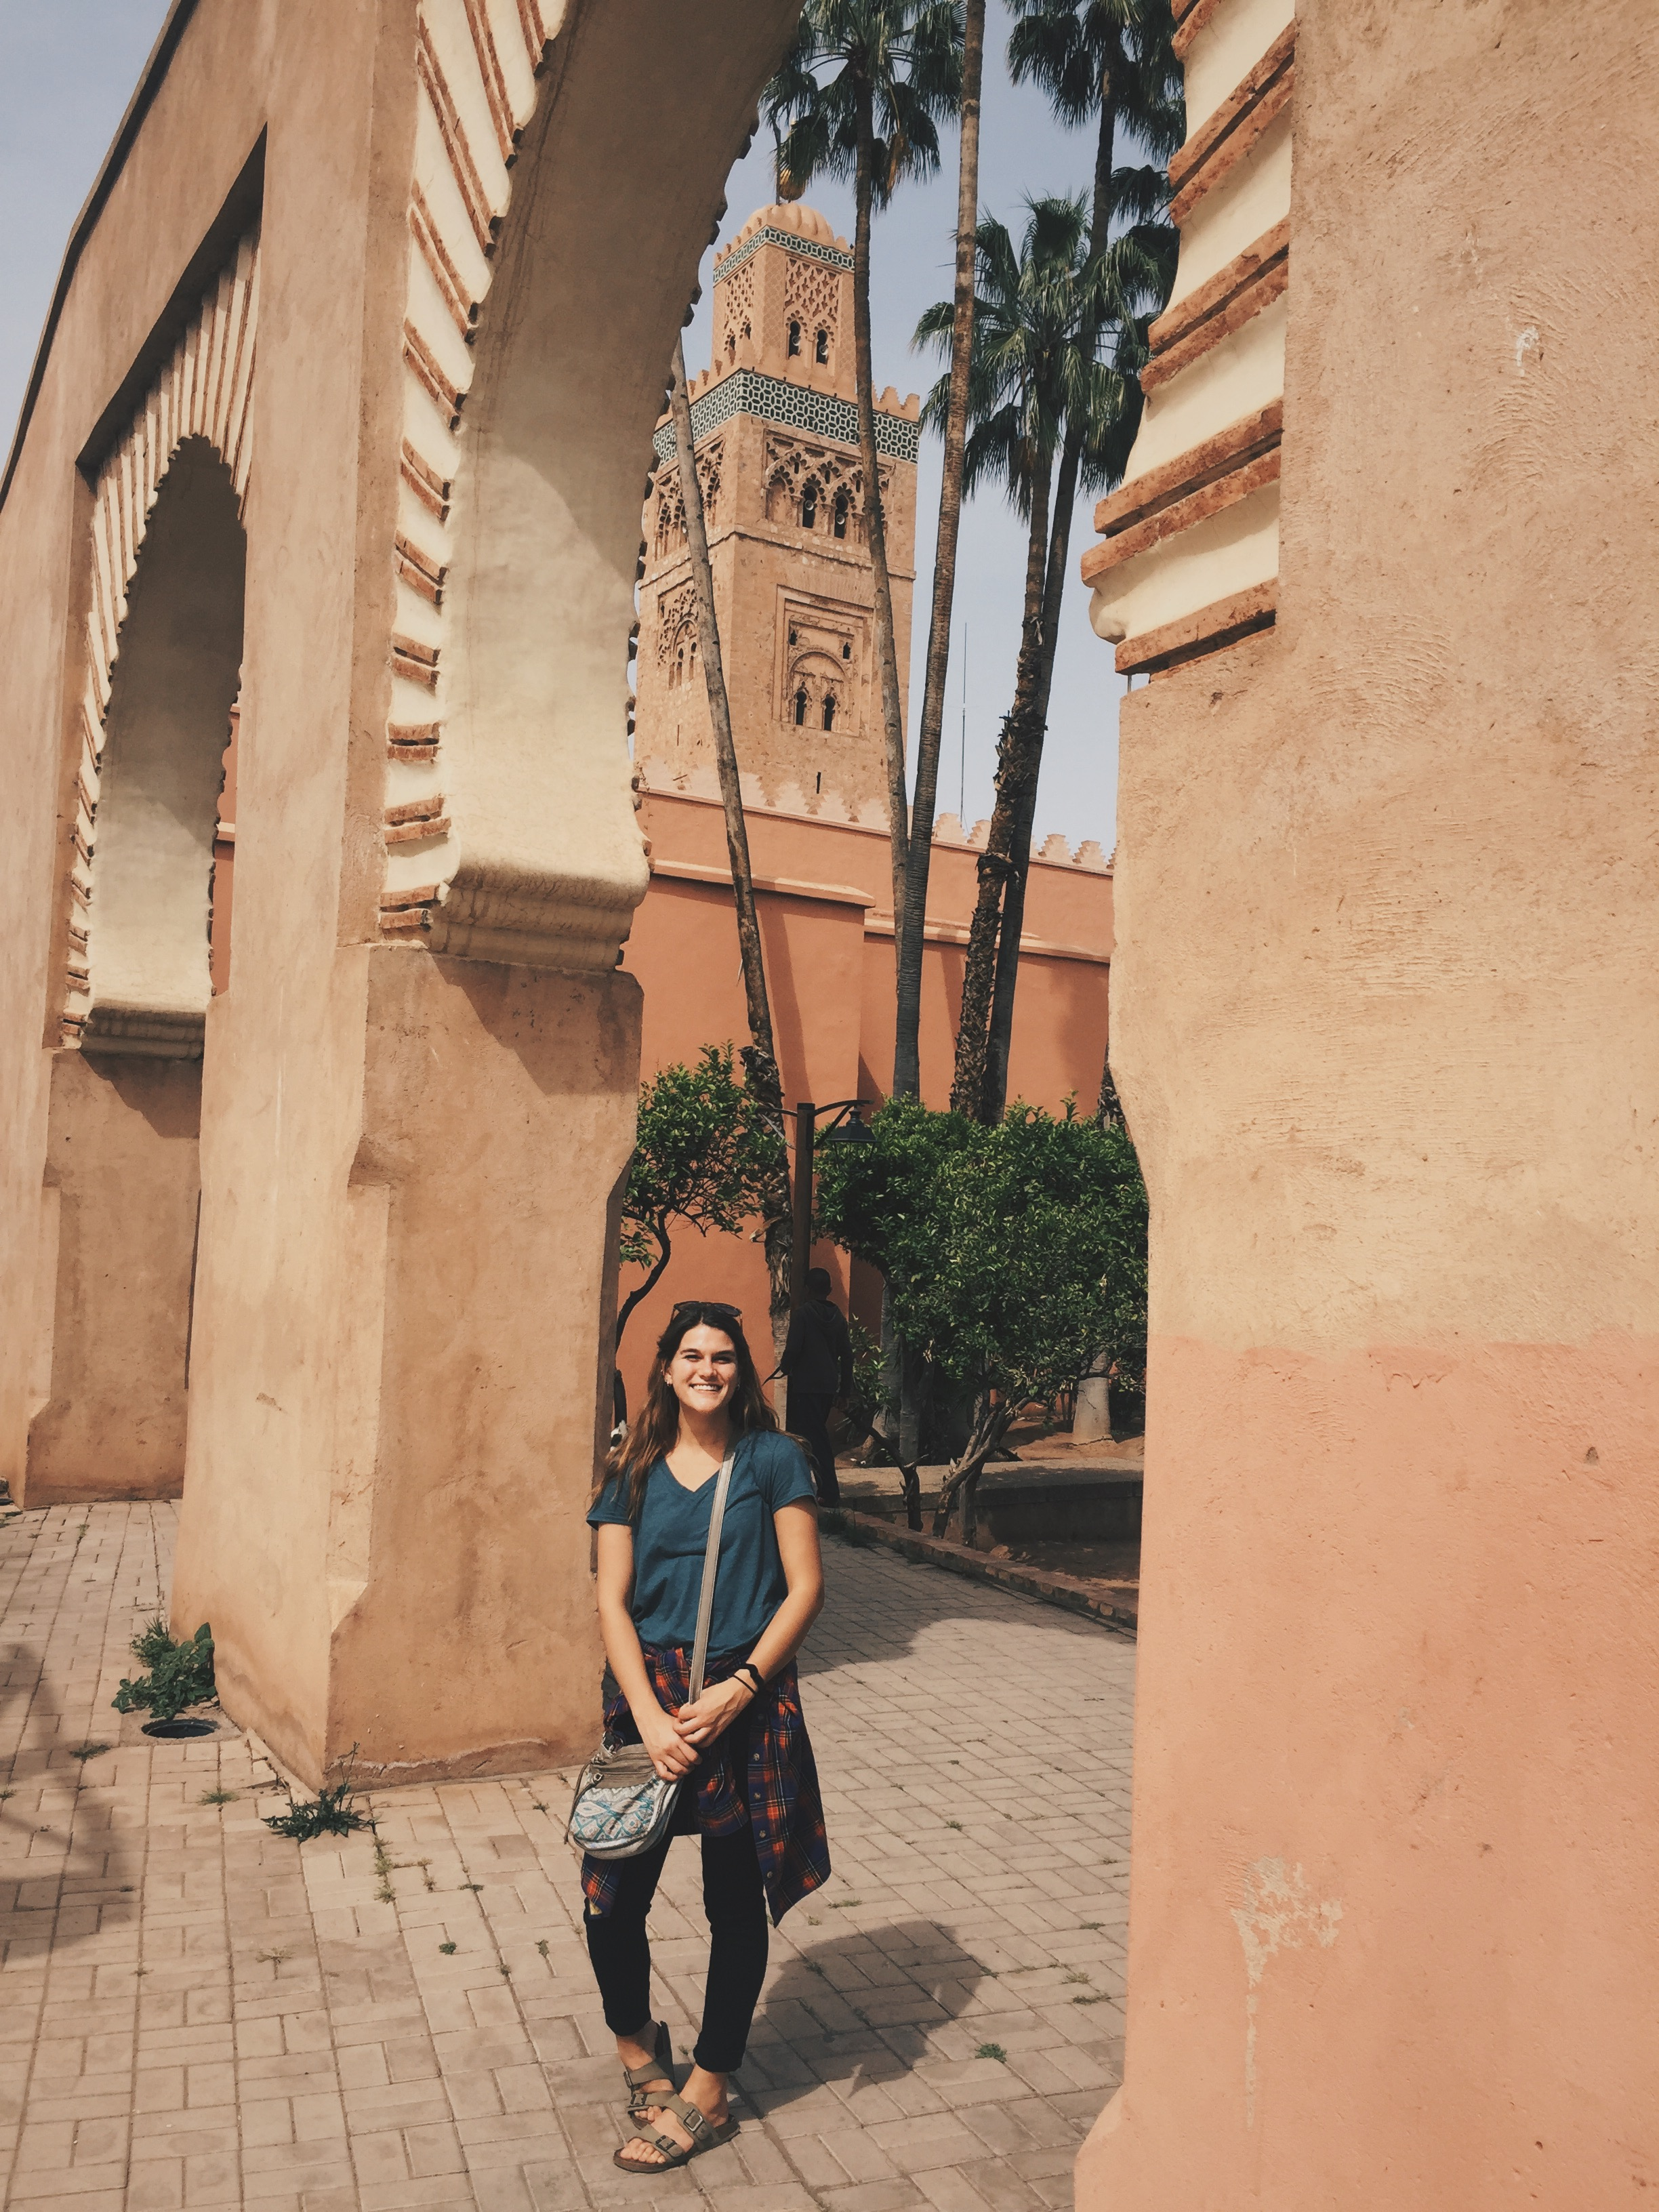 Maggie O'Brien ('19 psychology and Spanish) studied abroad in Cáceres, Spain. This photo was taken in Marrakech, Morocco.